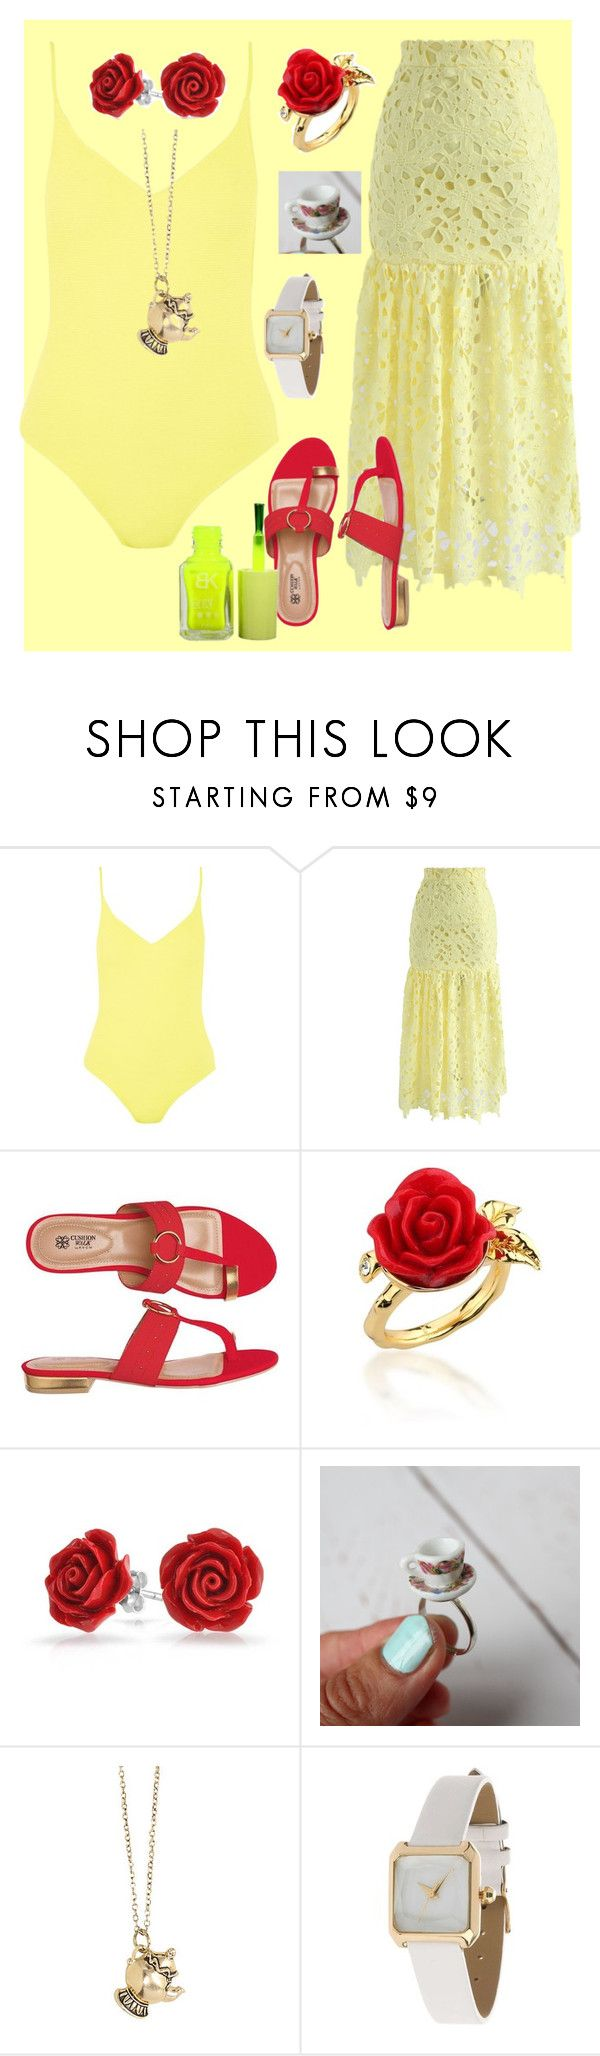 """Belle Beach Look"" by ununiformedstyles on Polyvore featuring Topshop, Chicwish, Avon, Disney Couture, Bling Jewelry, Disney and Miss Selfridge"